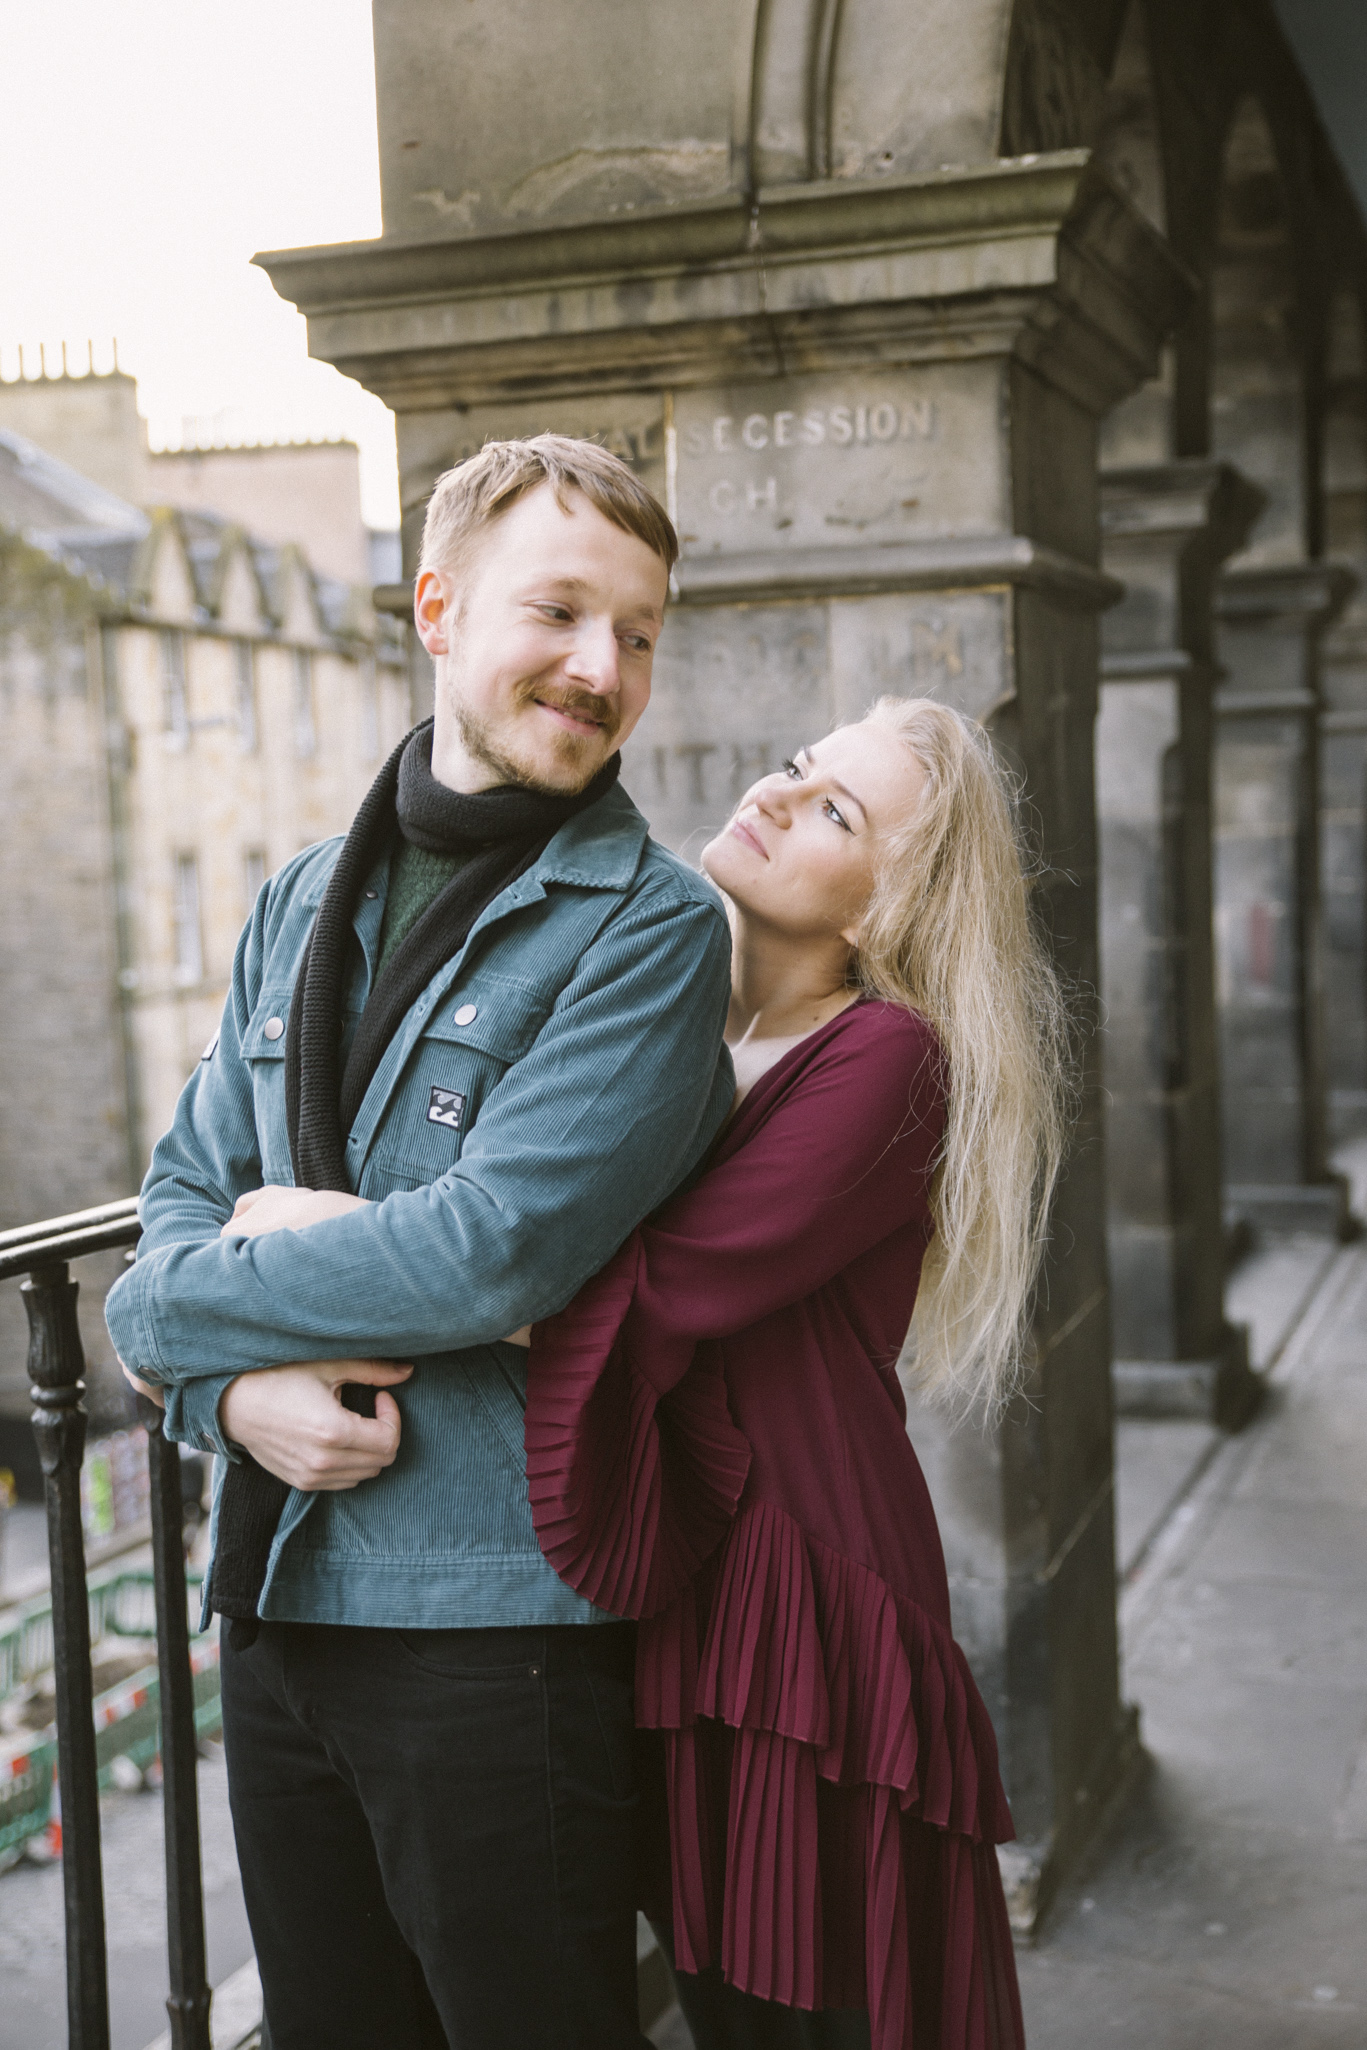 Lovers in Edinburgh, Scottish Proposal, Victoria Street, Wedding Photography, Romantic Edinburgh Street Old Town Couple Photoshoot | Pre Wedding Photography | Engagement Portraits Scotland | Destination Elopement | Elope in Edinburgh | Couple | Ceranna Photography | Romantic Natural Light Photographer